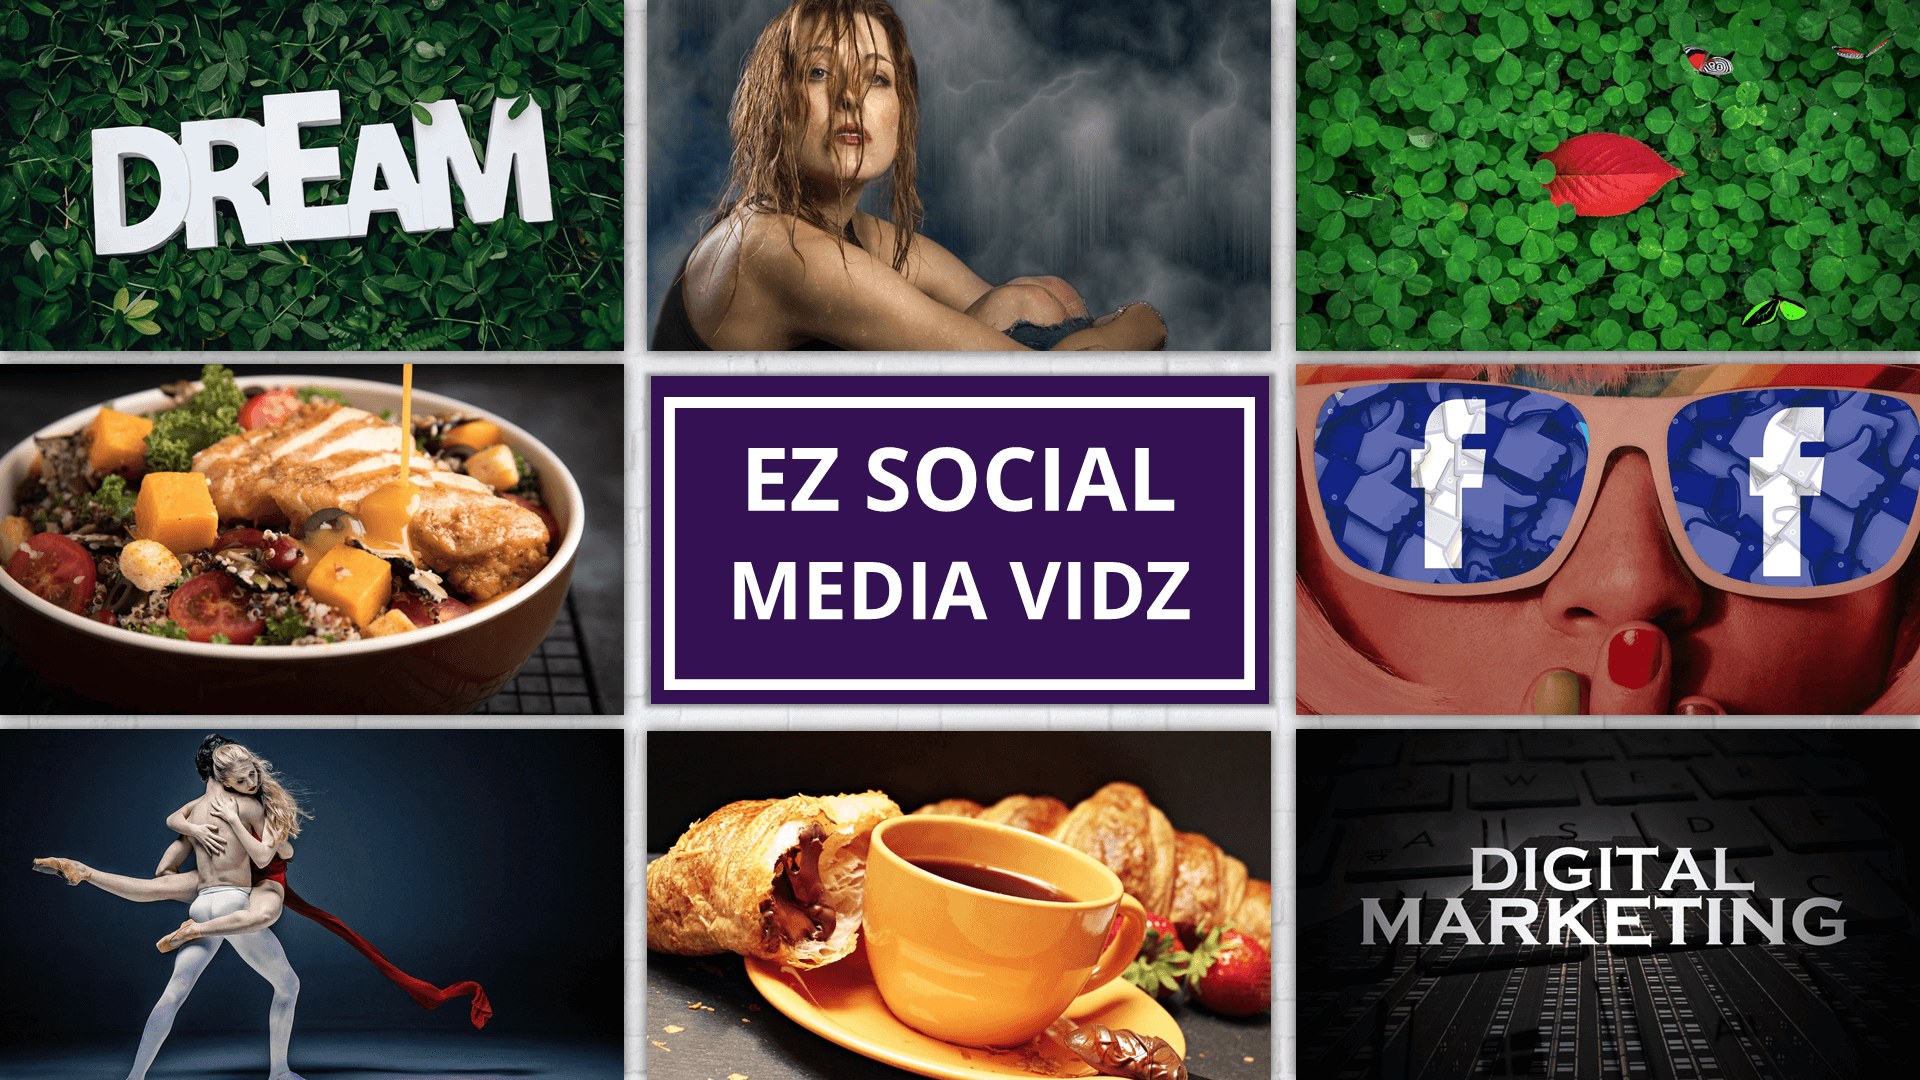 EZ_SocialMedia_Vids_Display